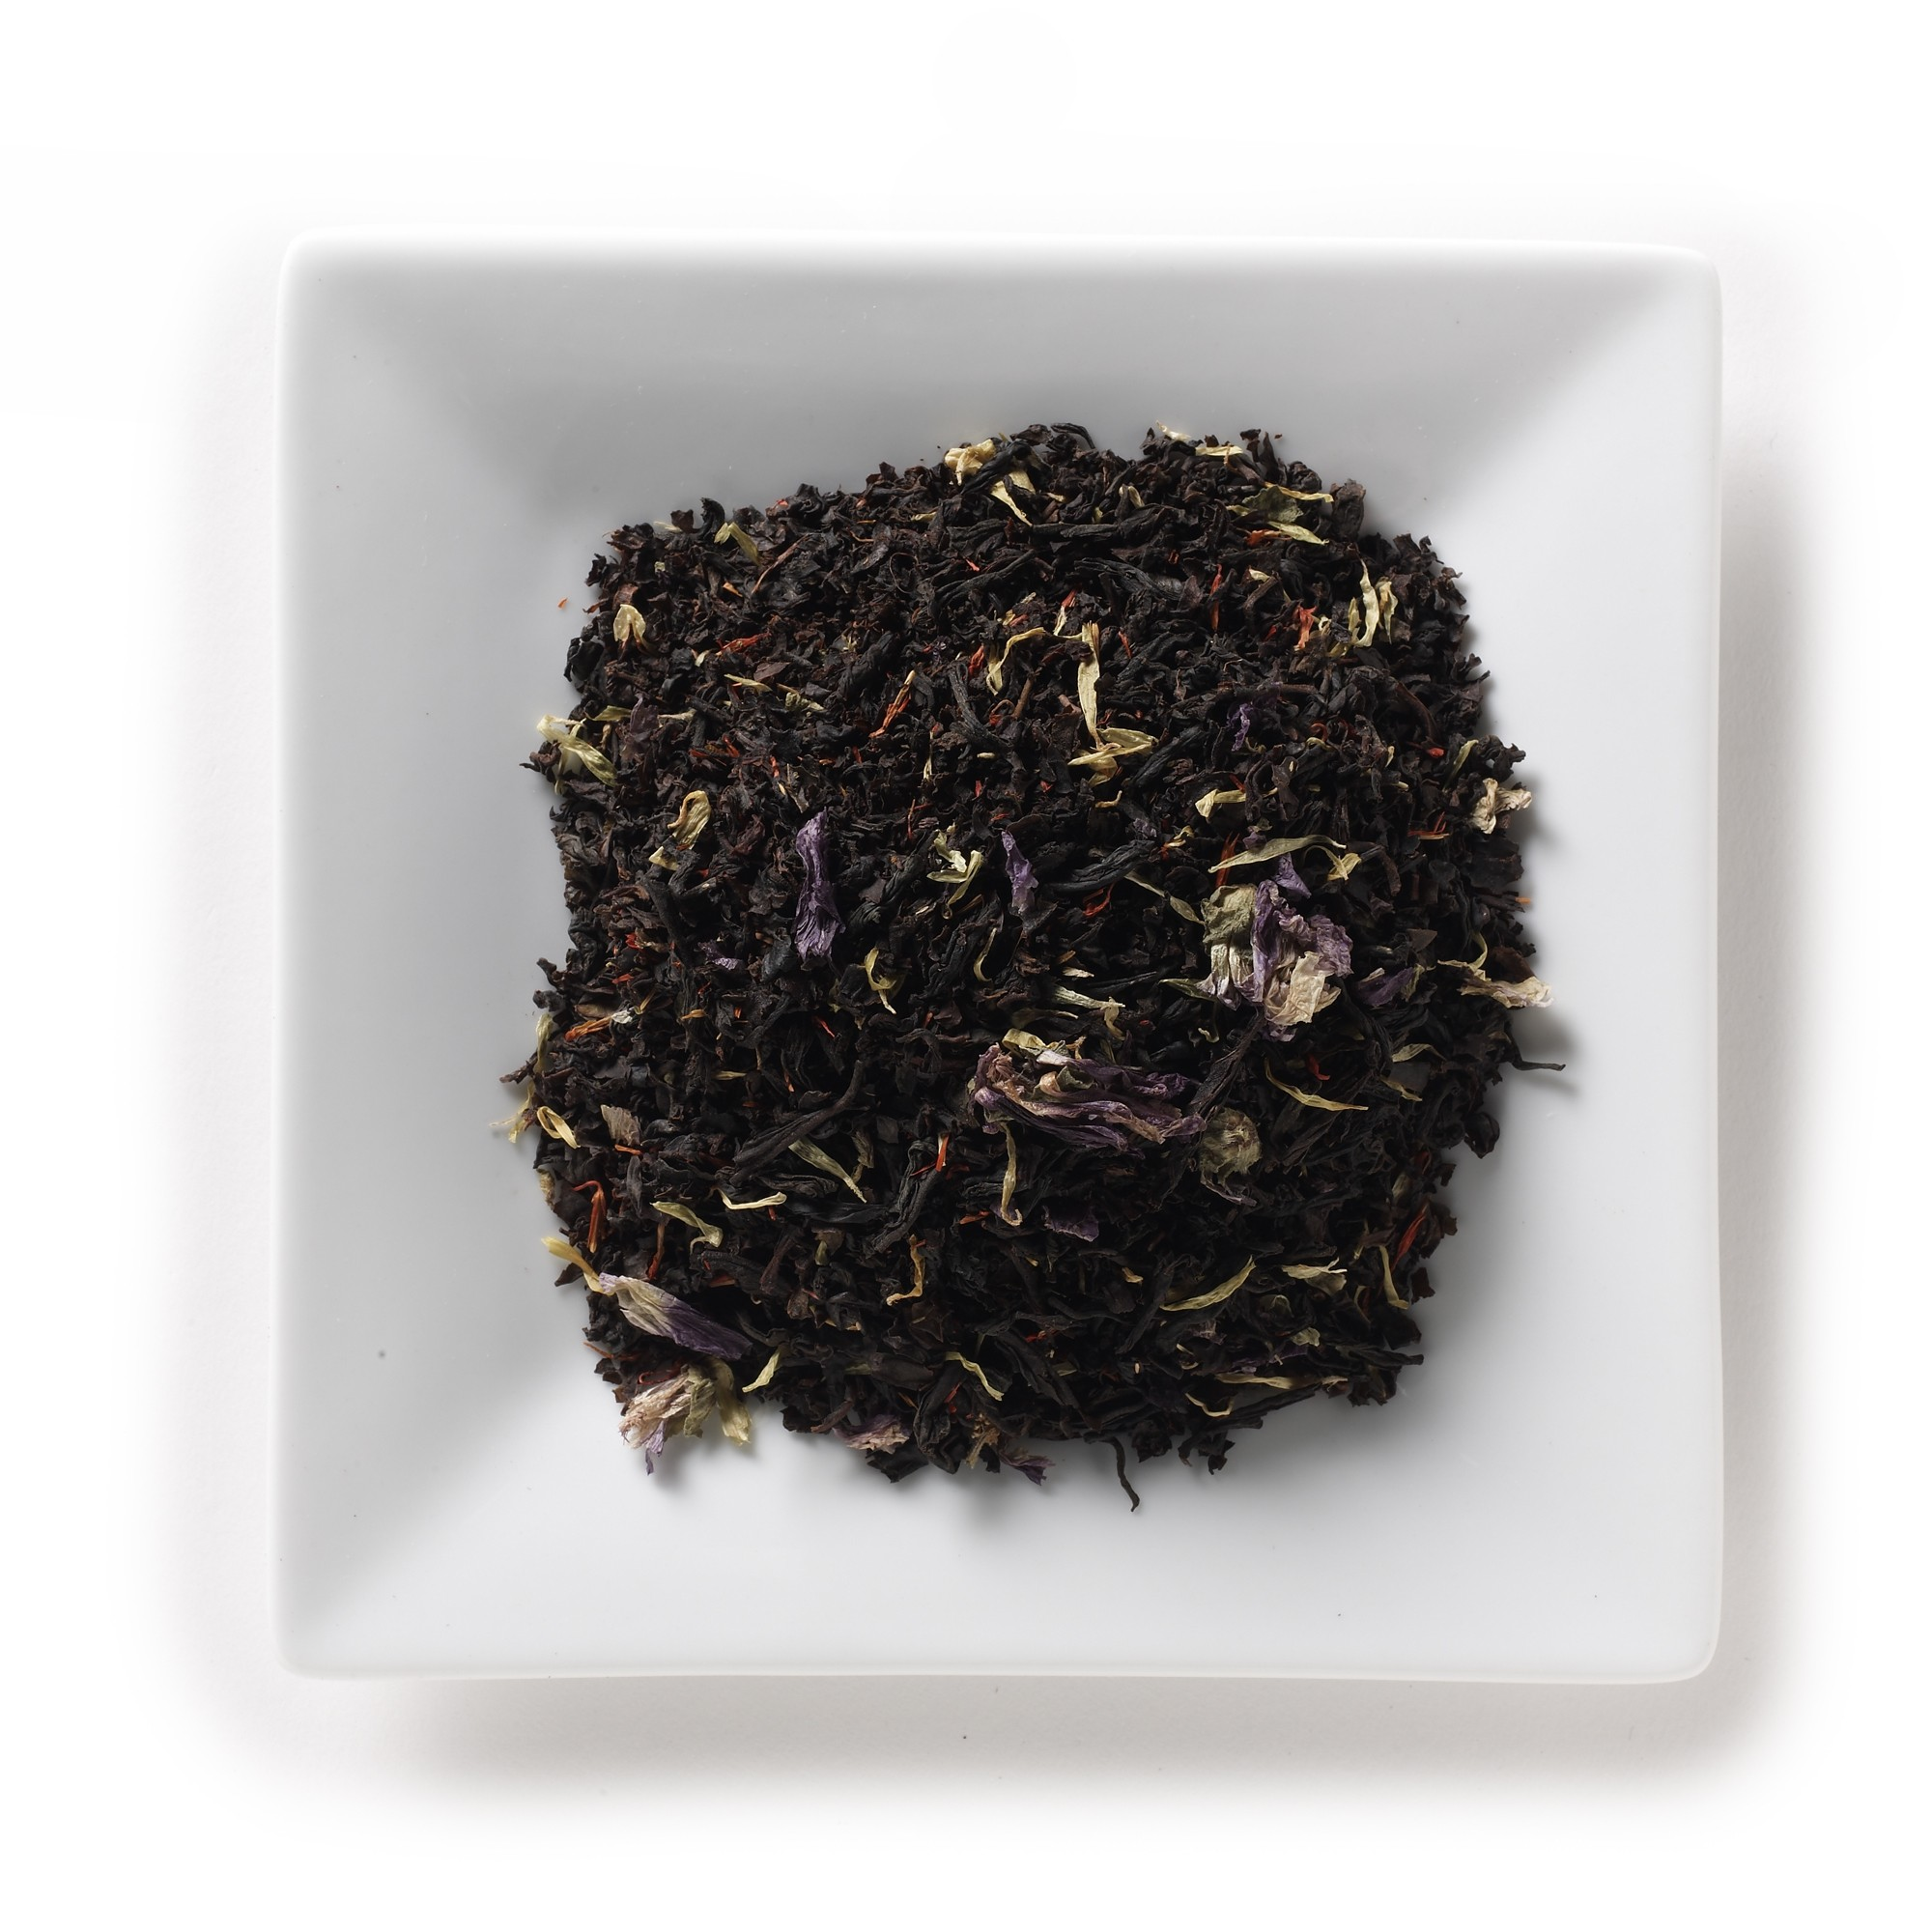 Tropical Earl Grey